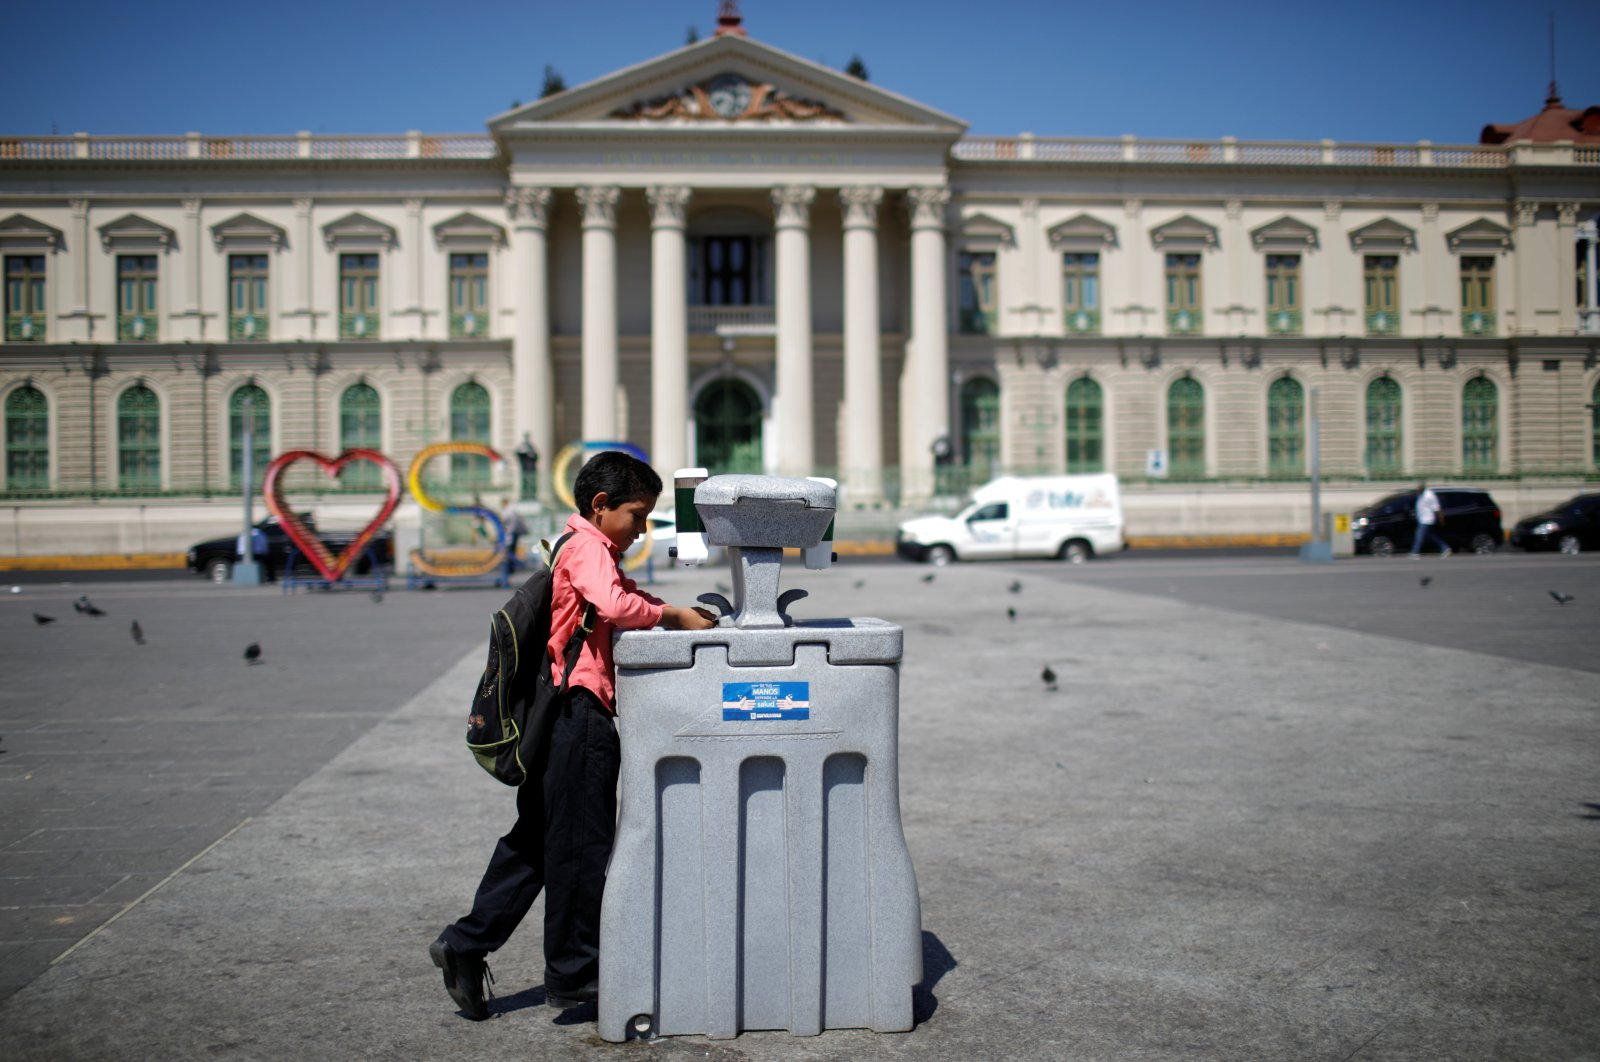 A boy washes his hands in a portable hand-washing station as part of the steadily stricter measures to prevent a possible spread of the coronavirus disease (COVID-19), at the Metropolitan Cathedral, in San Salvador, El Salvador, March 15, 2020. (Reuters Photo)